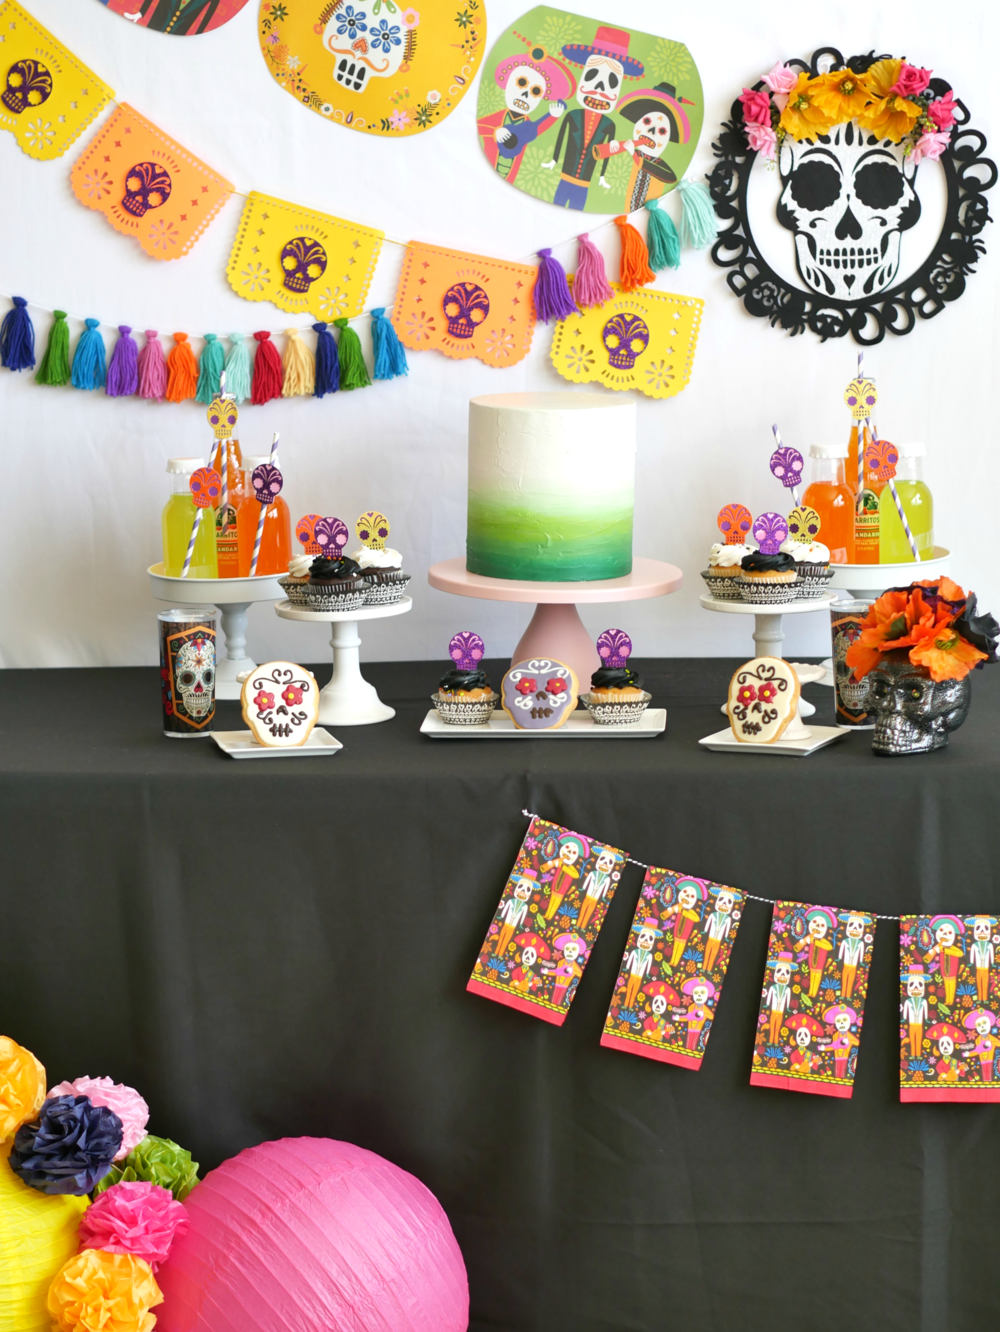 Find how to create these colorful Papel Picado banners from Day of the Dead themed napkins and paper lanterns on the Mint Event Design party blog from the Austin, Texas based party stylist www.minteventdesign.com #dayofthedead #diadelosmuertos #sugarskulls #mexicanparty #partyideas #papelpicado #partydecor